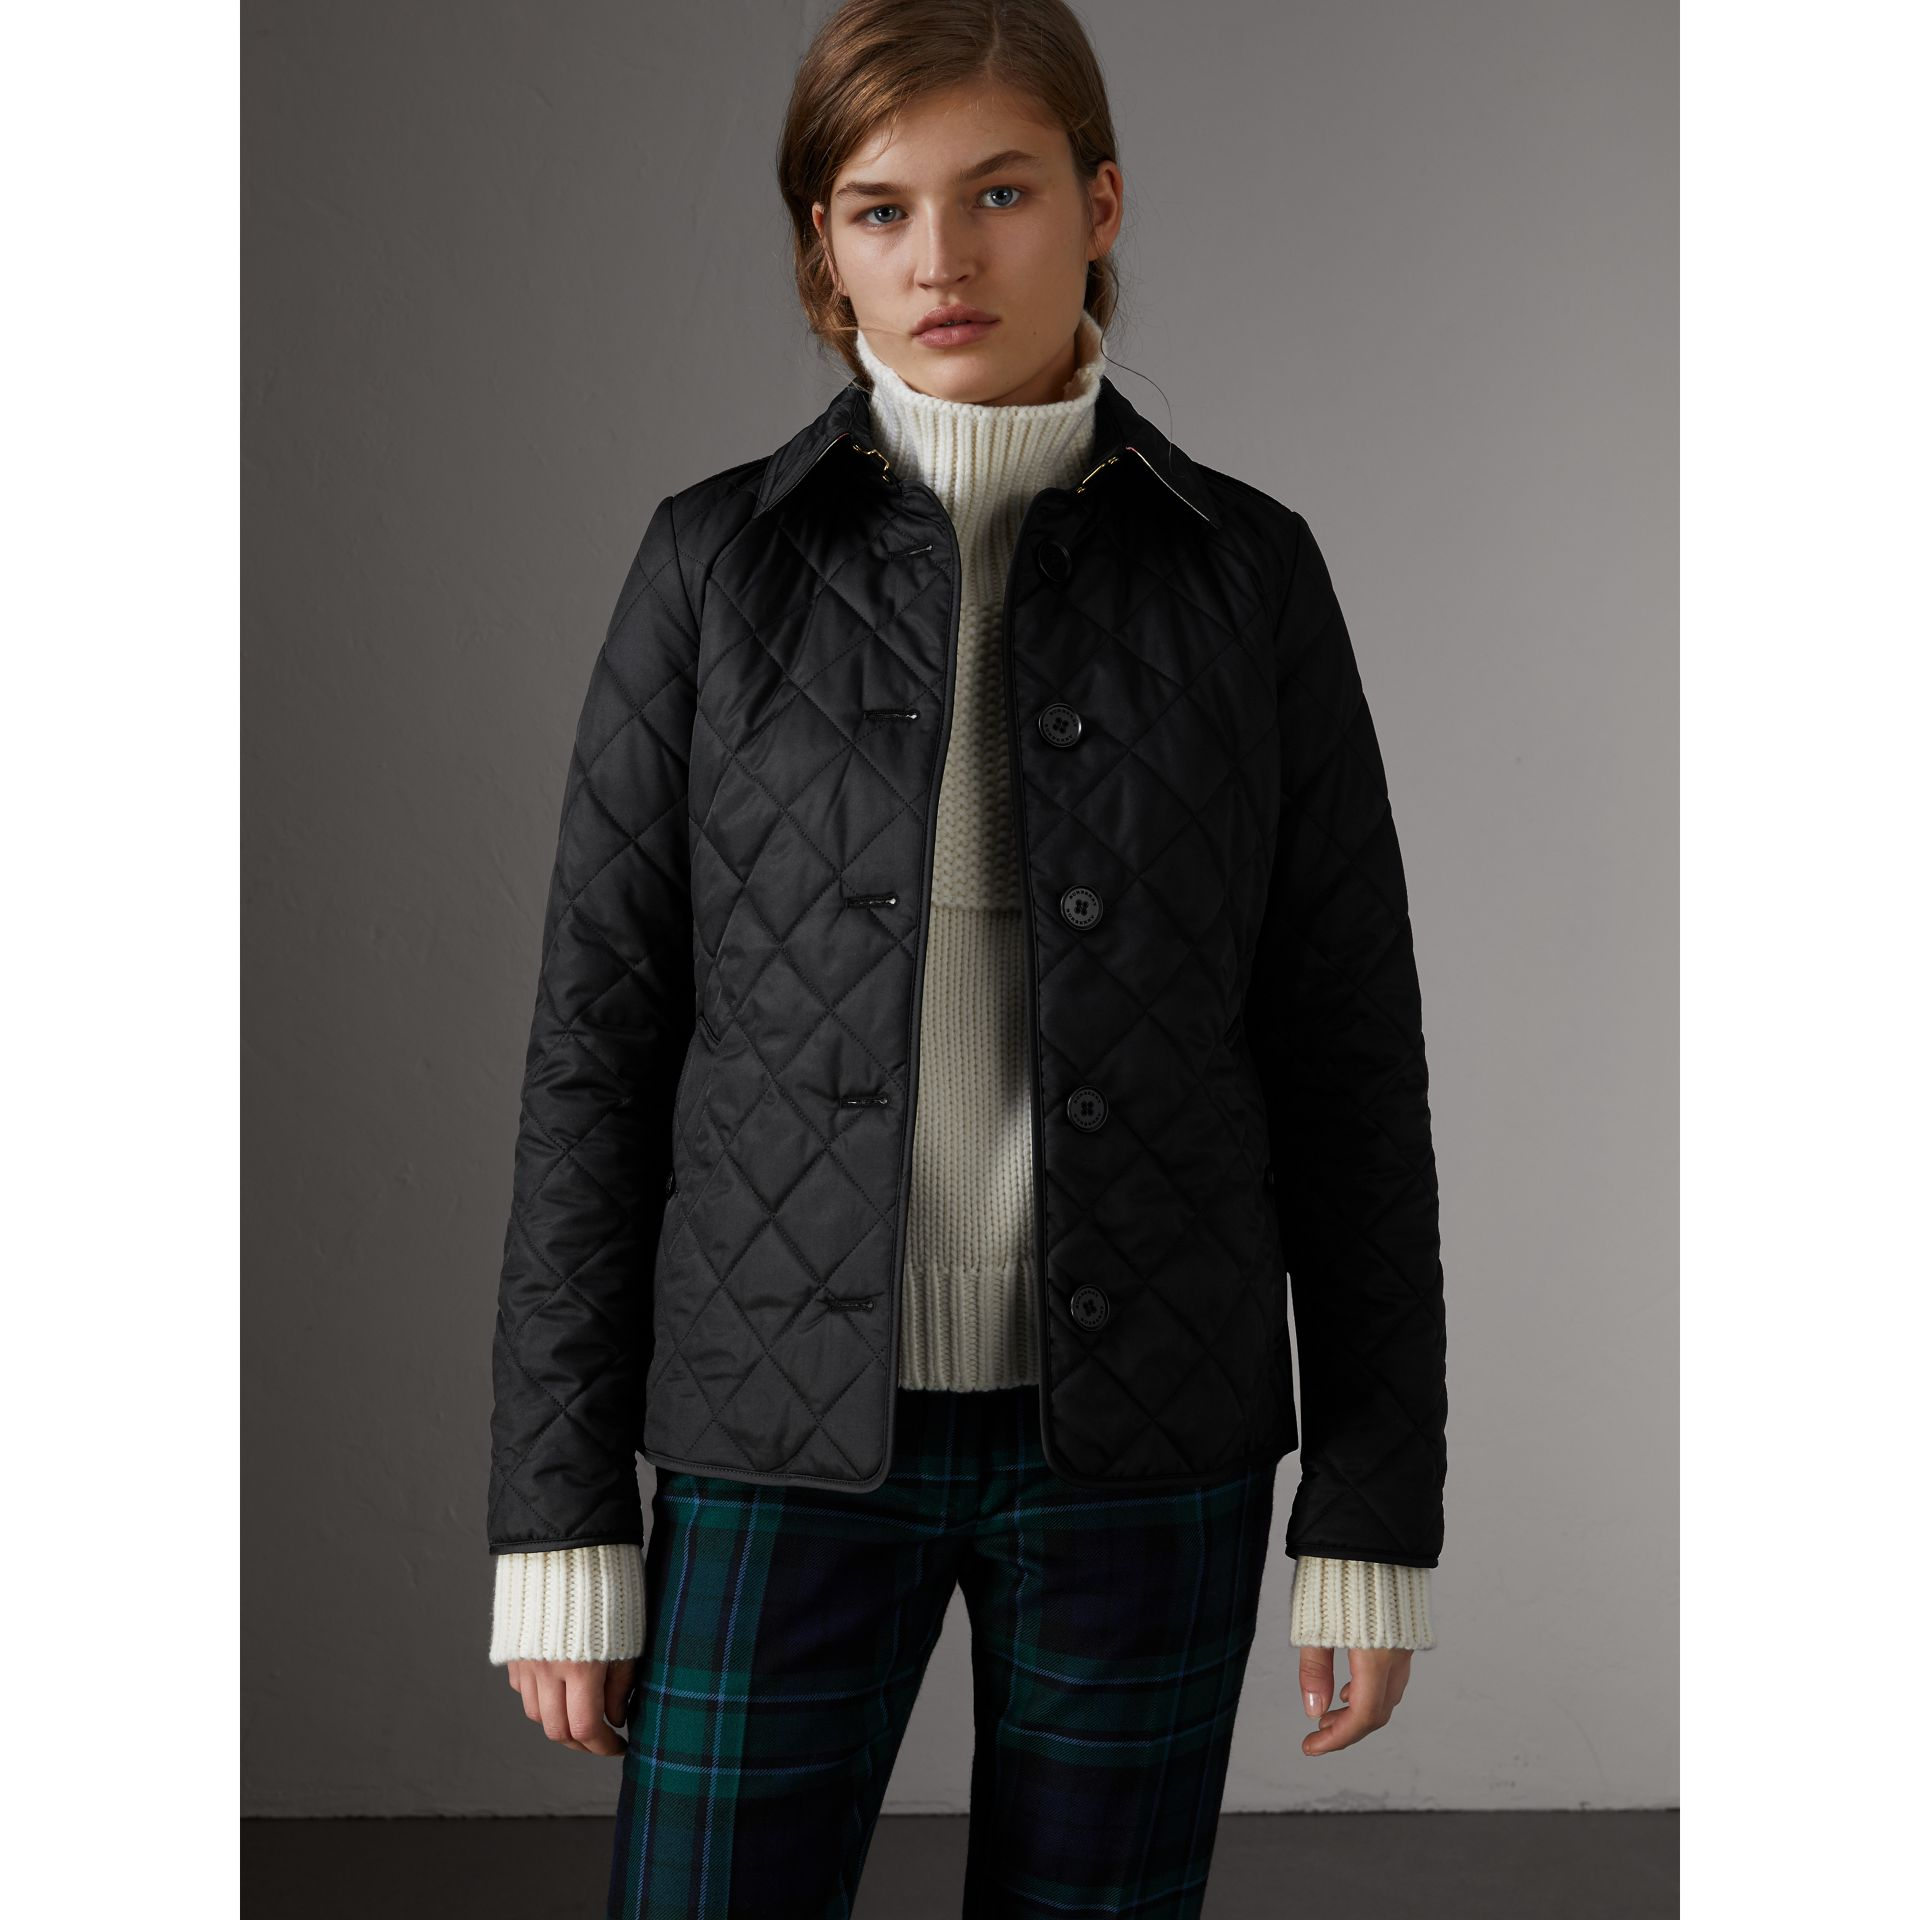 Diamond Quilted Jacket in Black - Women | Burberry Australia - gallery image 5